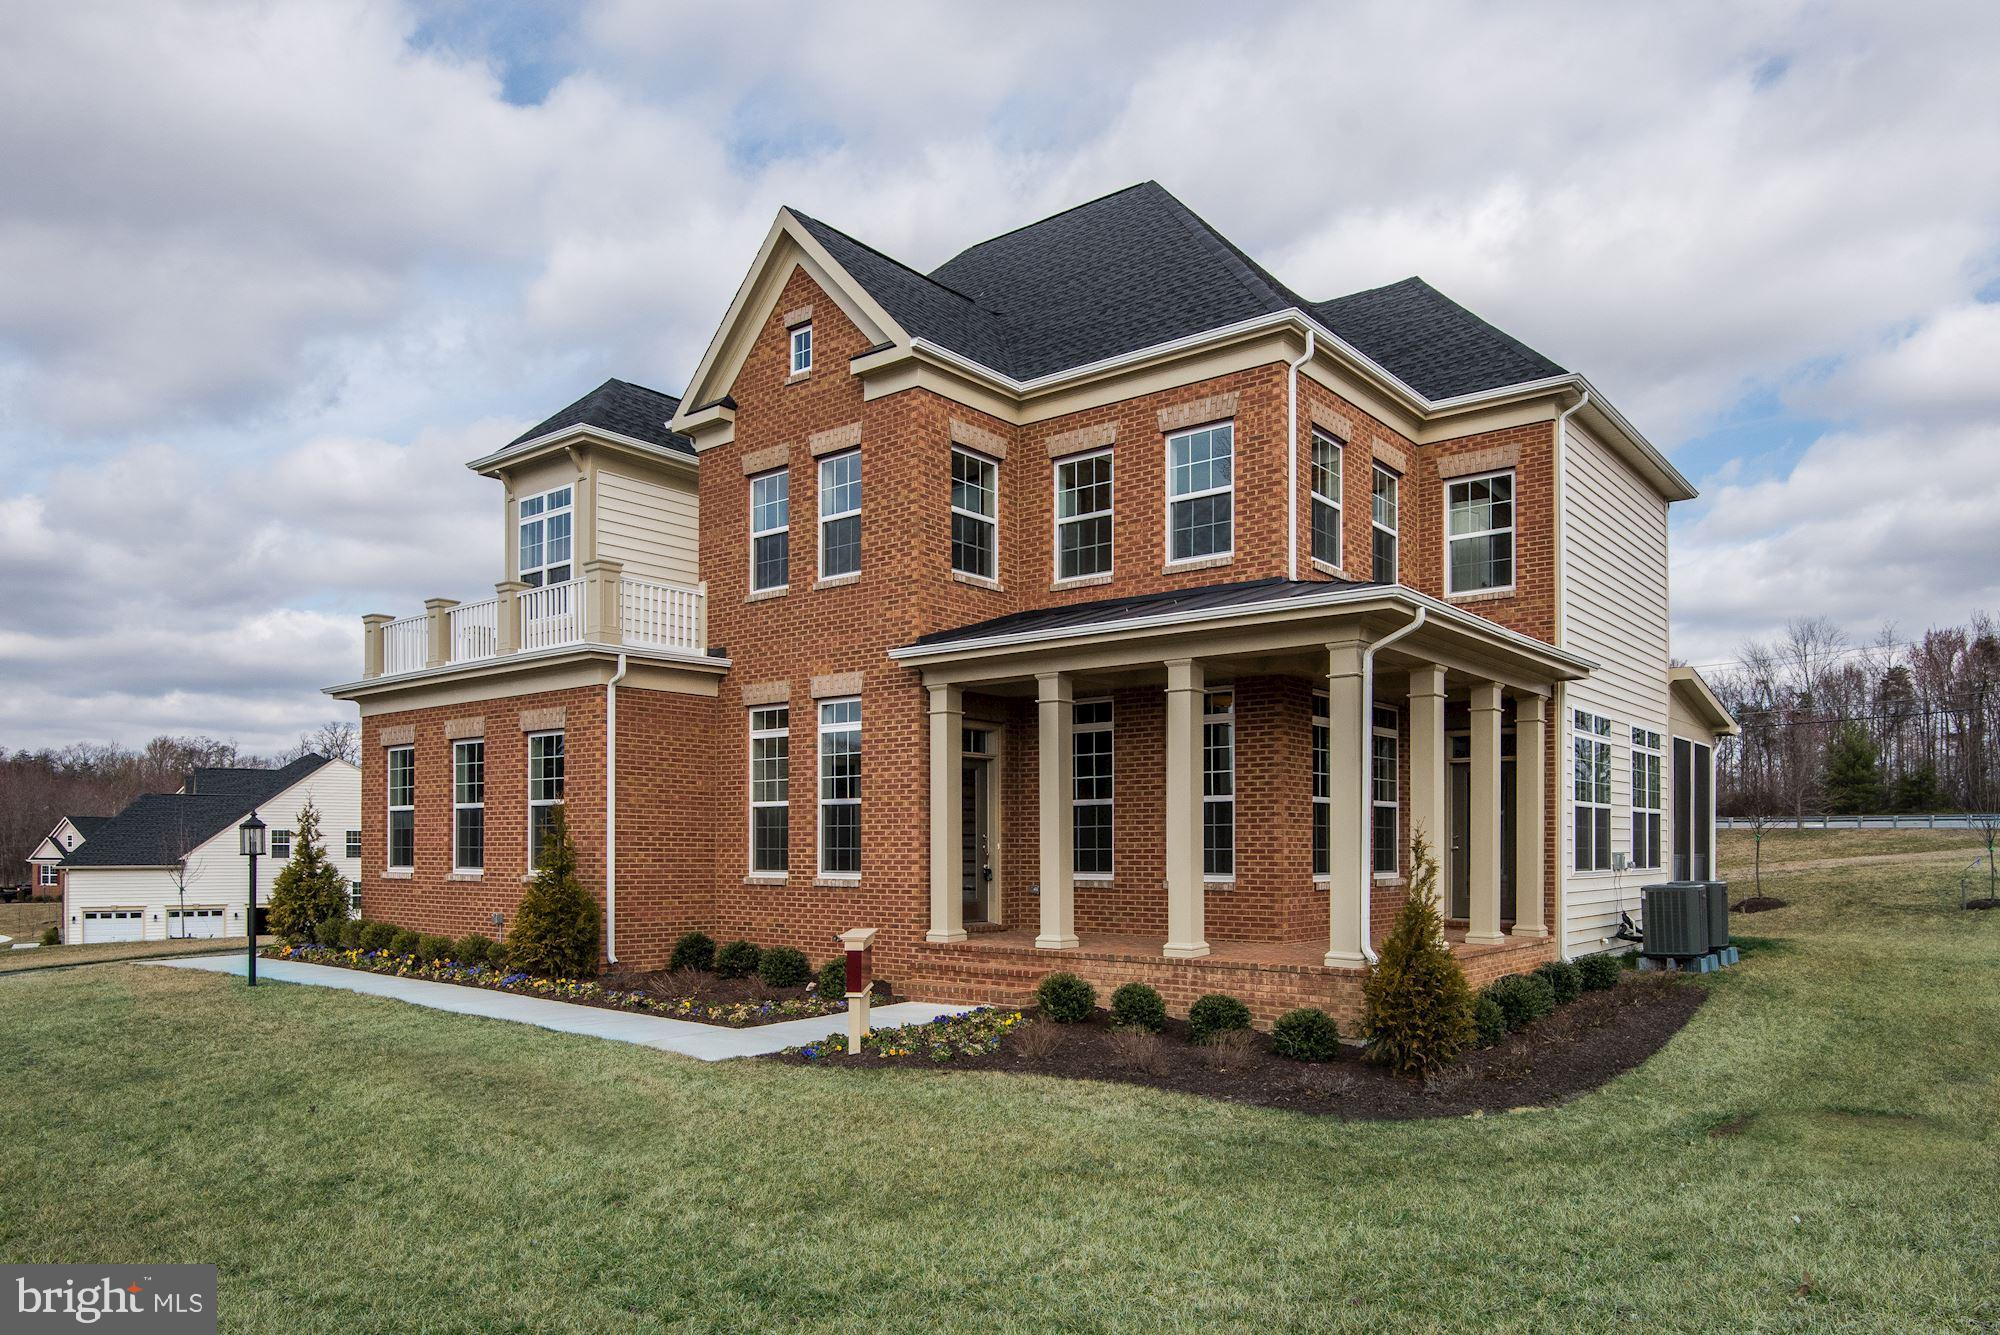 NEW CONSTRUCTION: MADISON 4 BR, 4.5 BA: 2 Car Side Entry Garage, 6ft. Portico Porch w/Return, Oak Stairs, Double-sided FP in Great Room &Study, Screened Back Porch, 10ft. Ceilings on 1st Flr, 9ft. Ceilings on 2nd &LL Flrs, Kitchen w/ GE Stainless Steel Appliace Package, Areaway in Basement, Finished Rec Rm w/Wet Bar, Game Room &Full Bath, Energy Saver Package